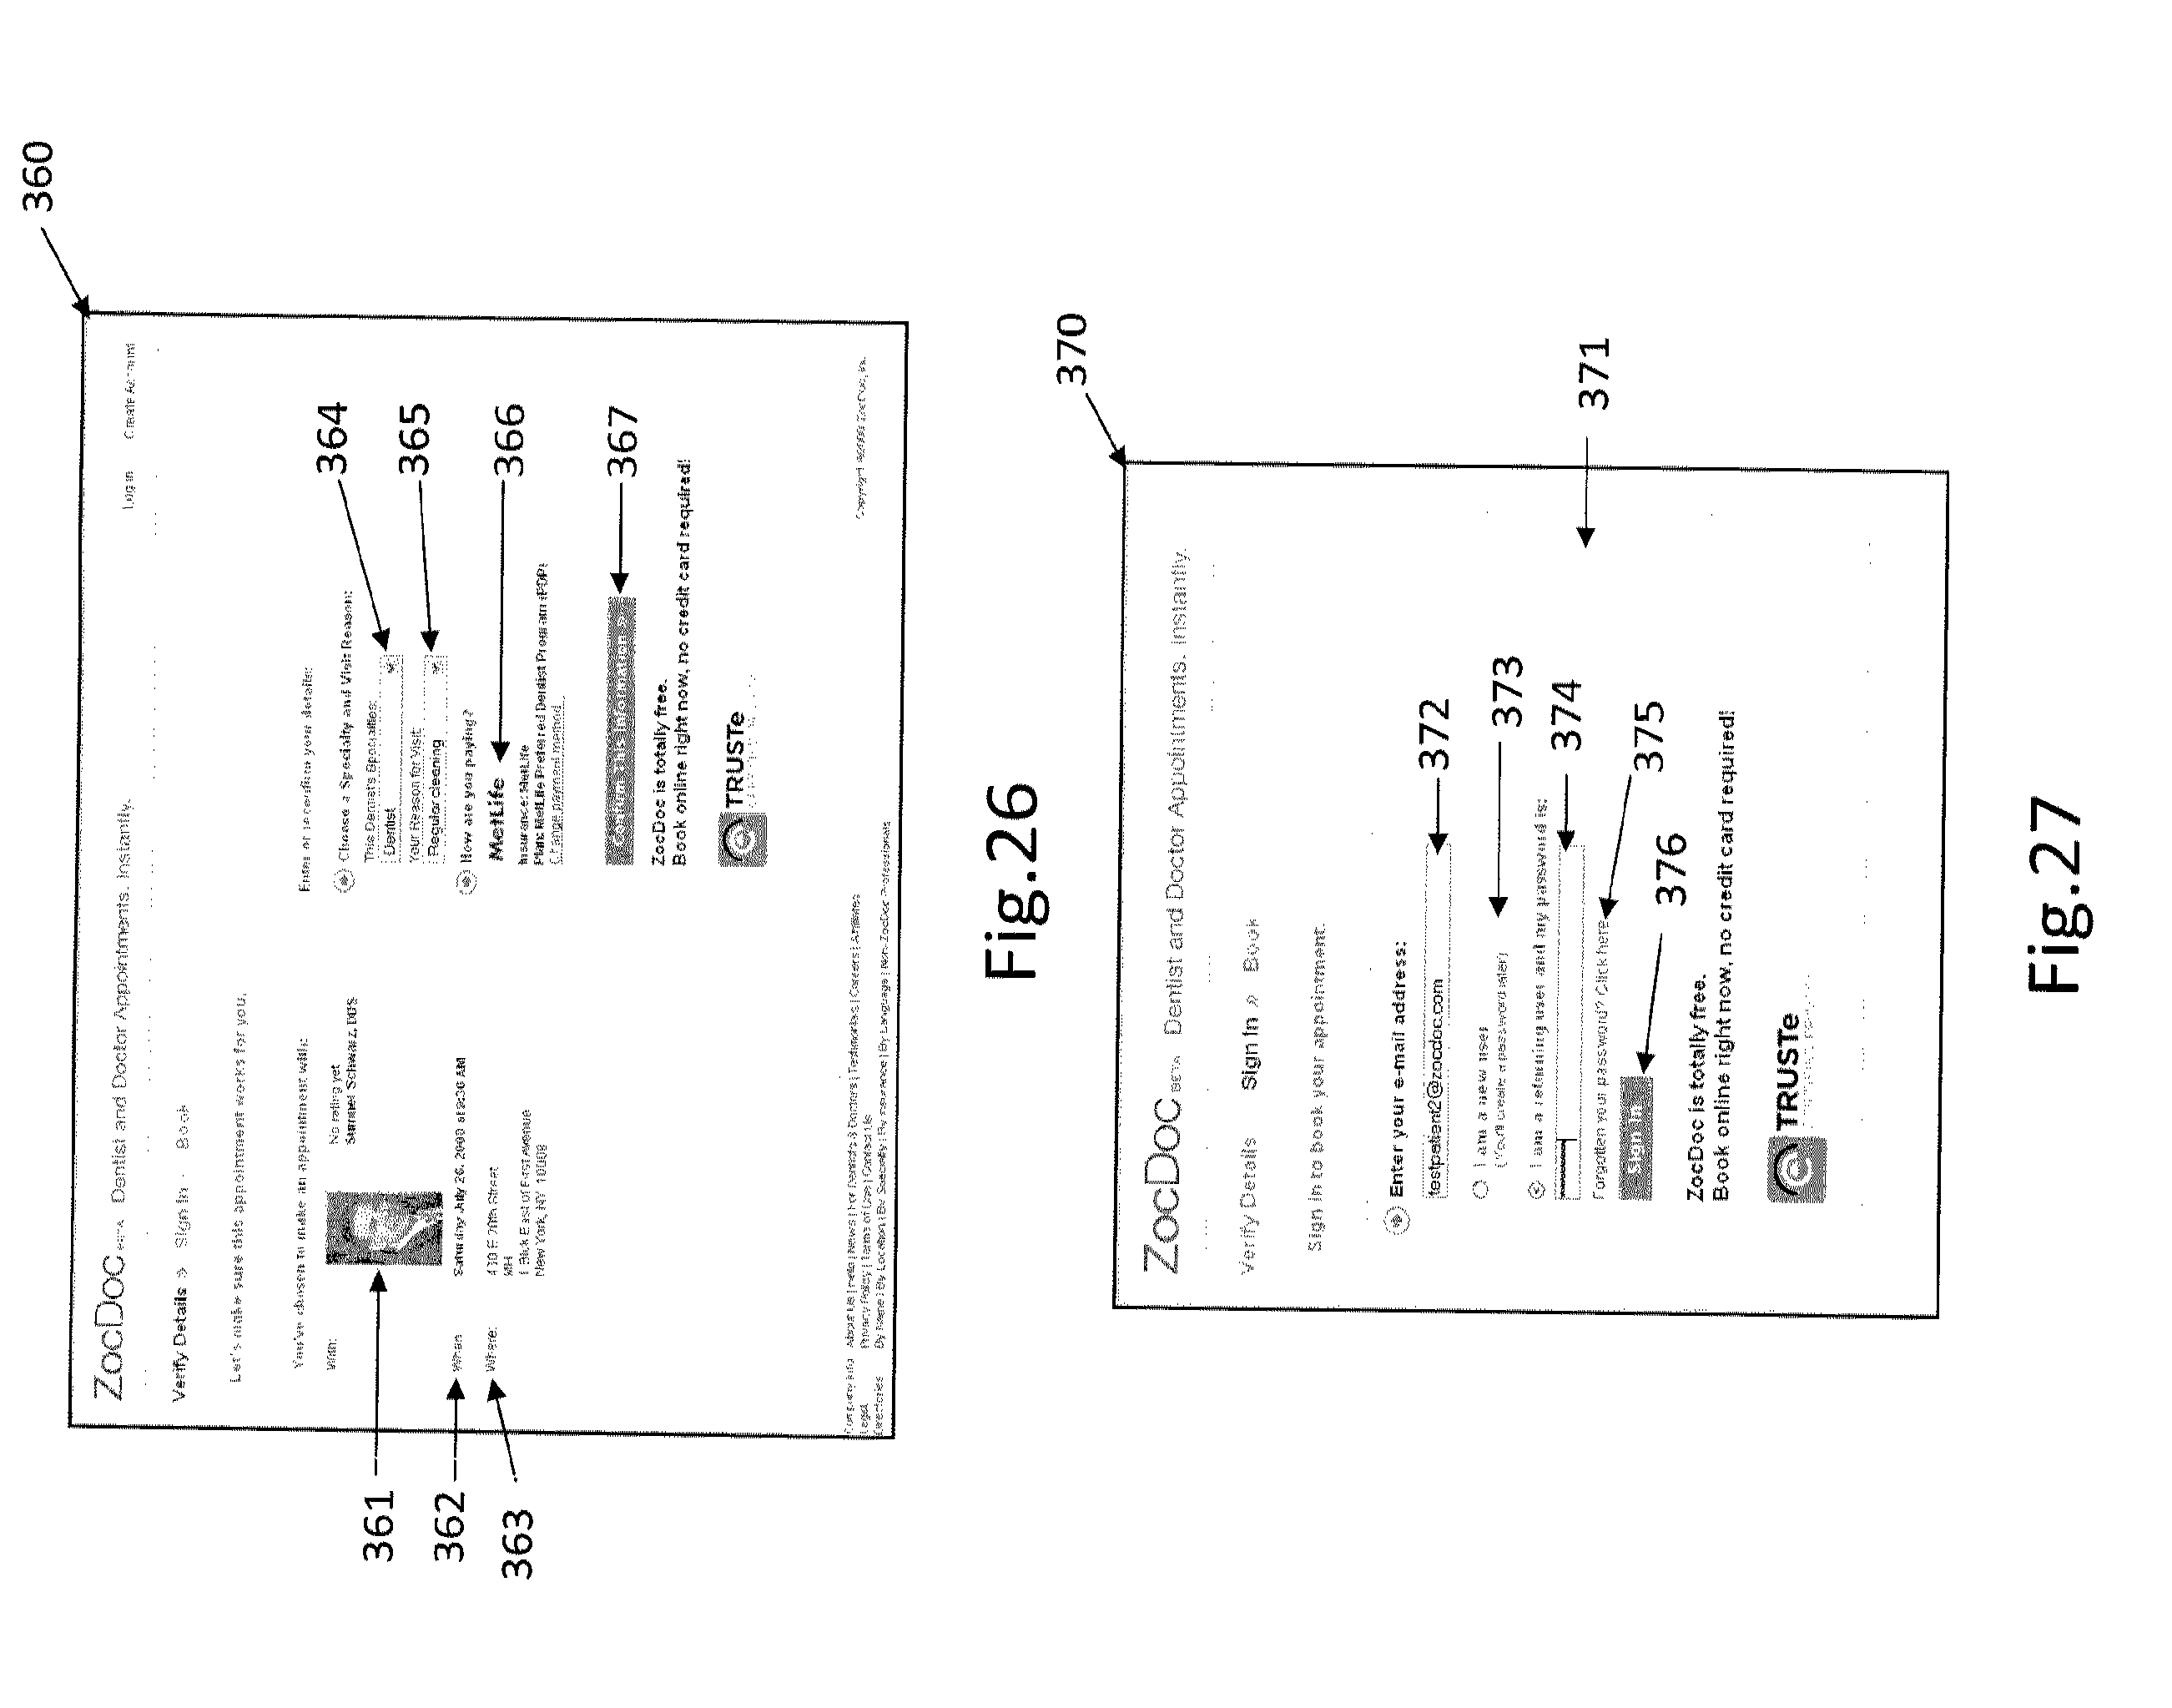 Led Circuit Submited Images